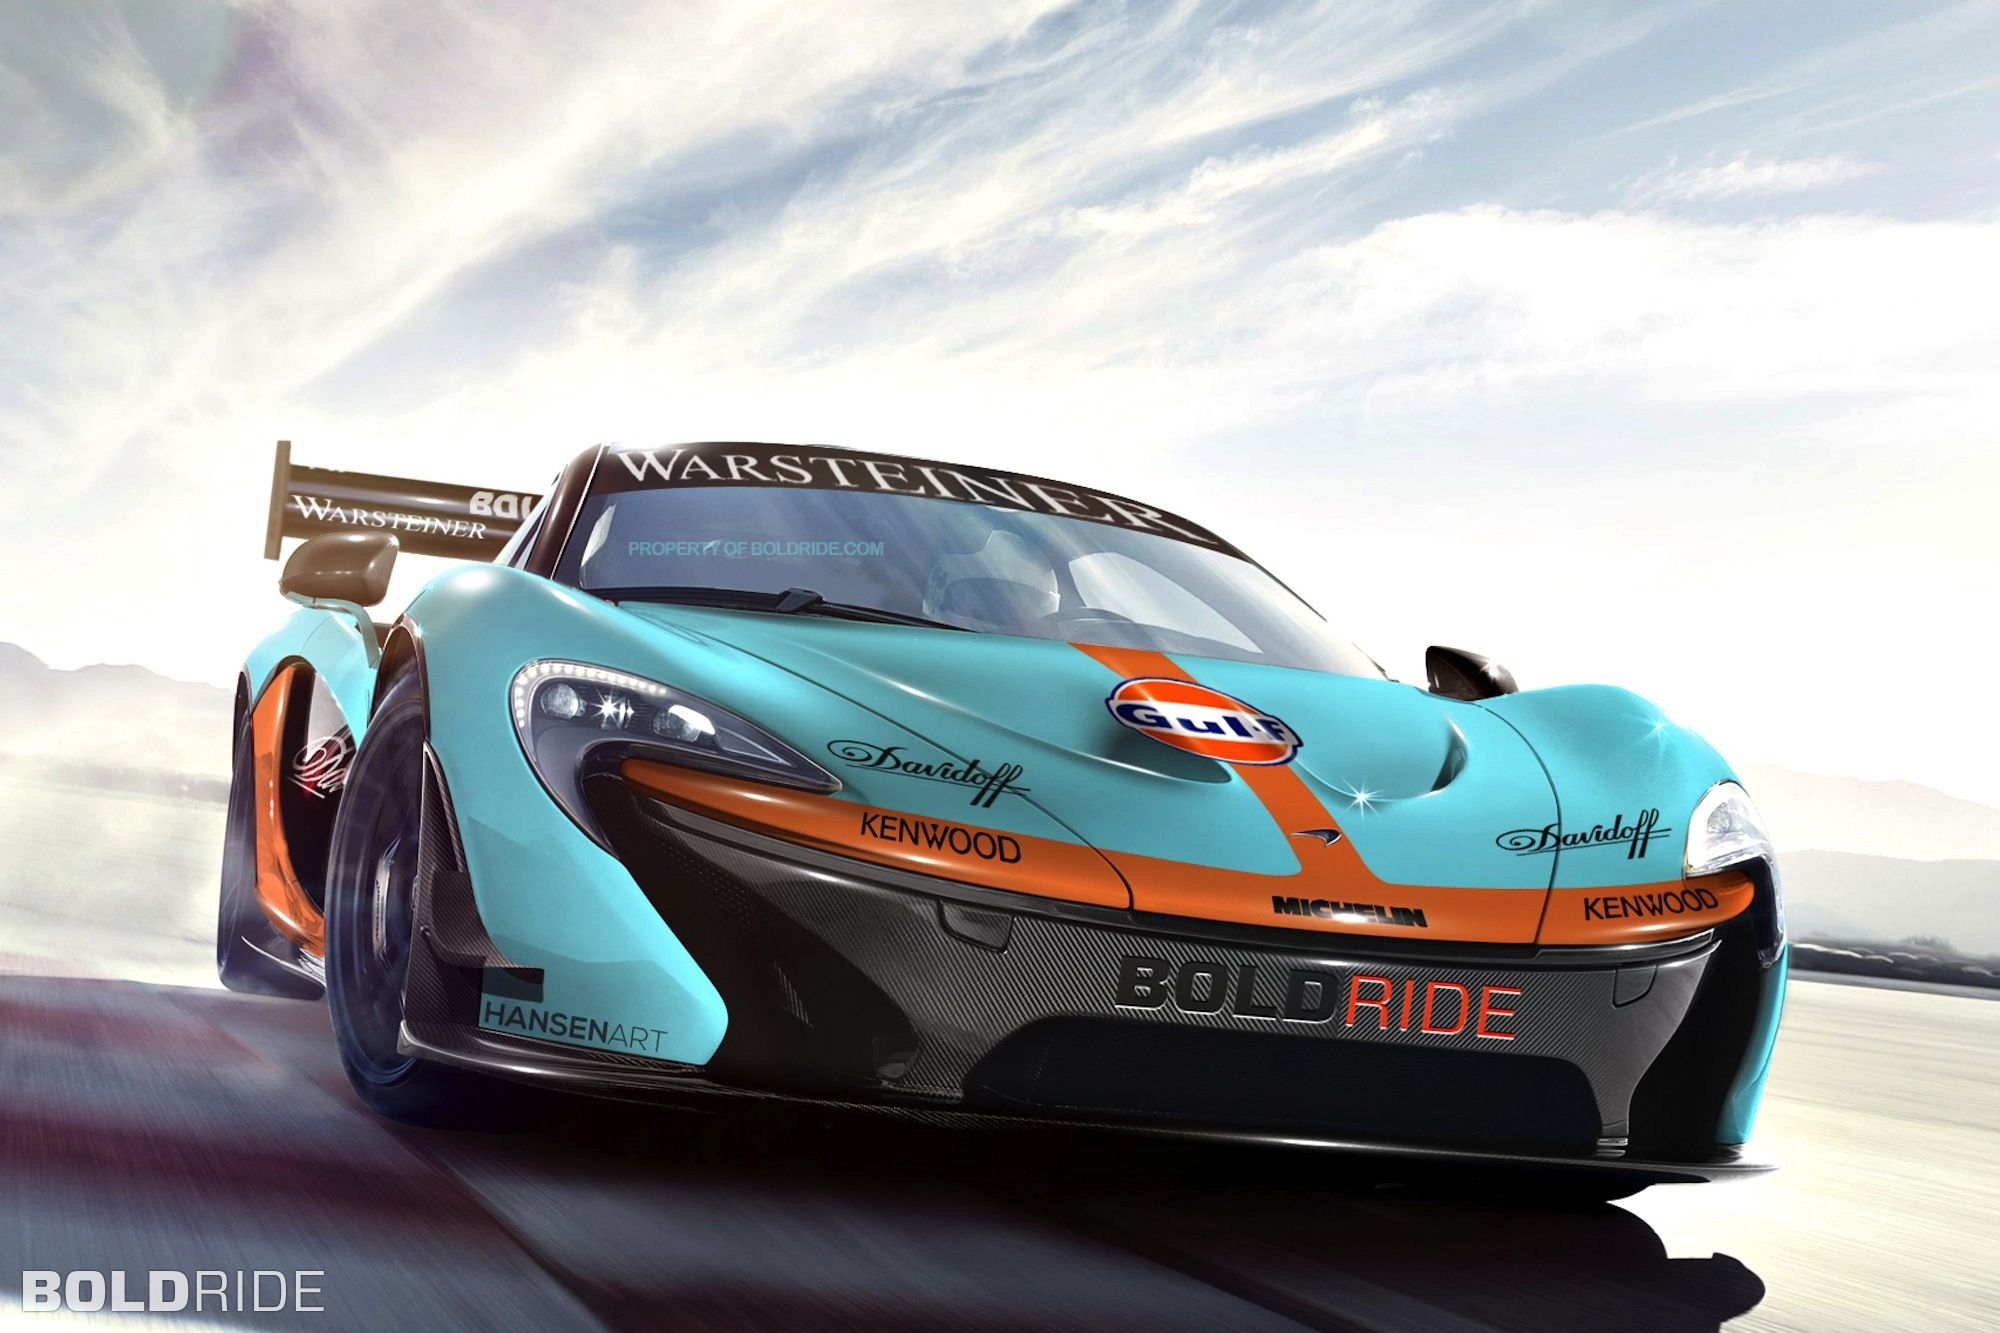 Mclaren p1 gtr extreme track weapon unveiled pictures - Maclaren P1 Gulf Orange Teal Gulf Company Logo